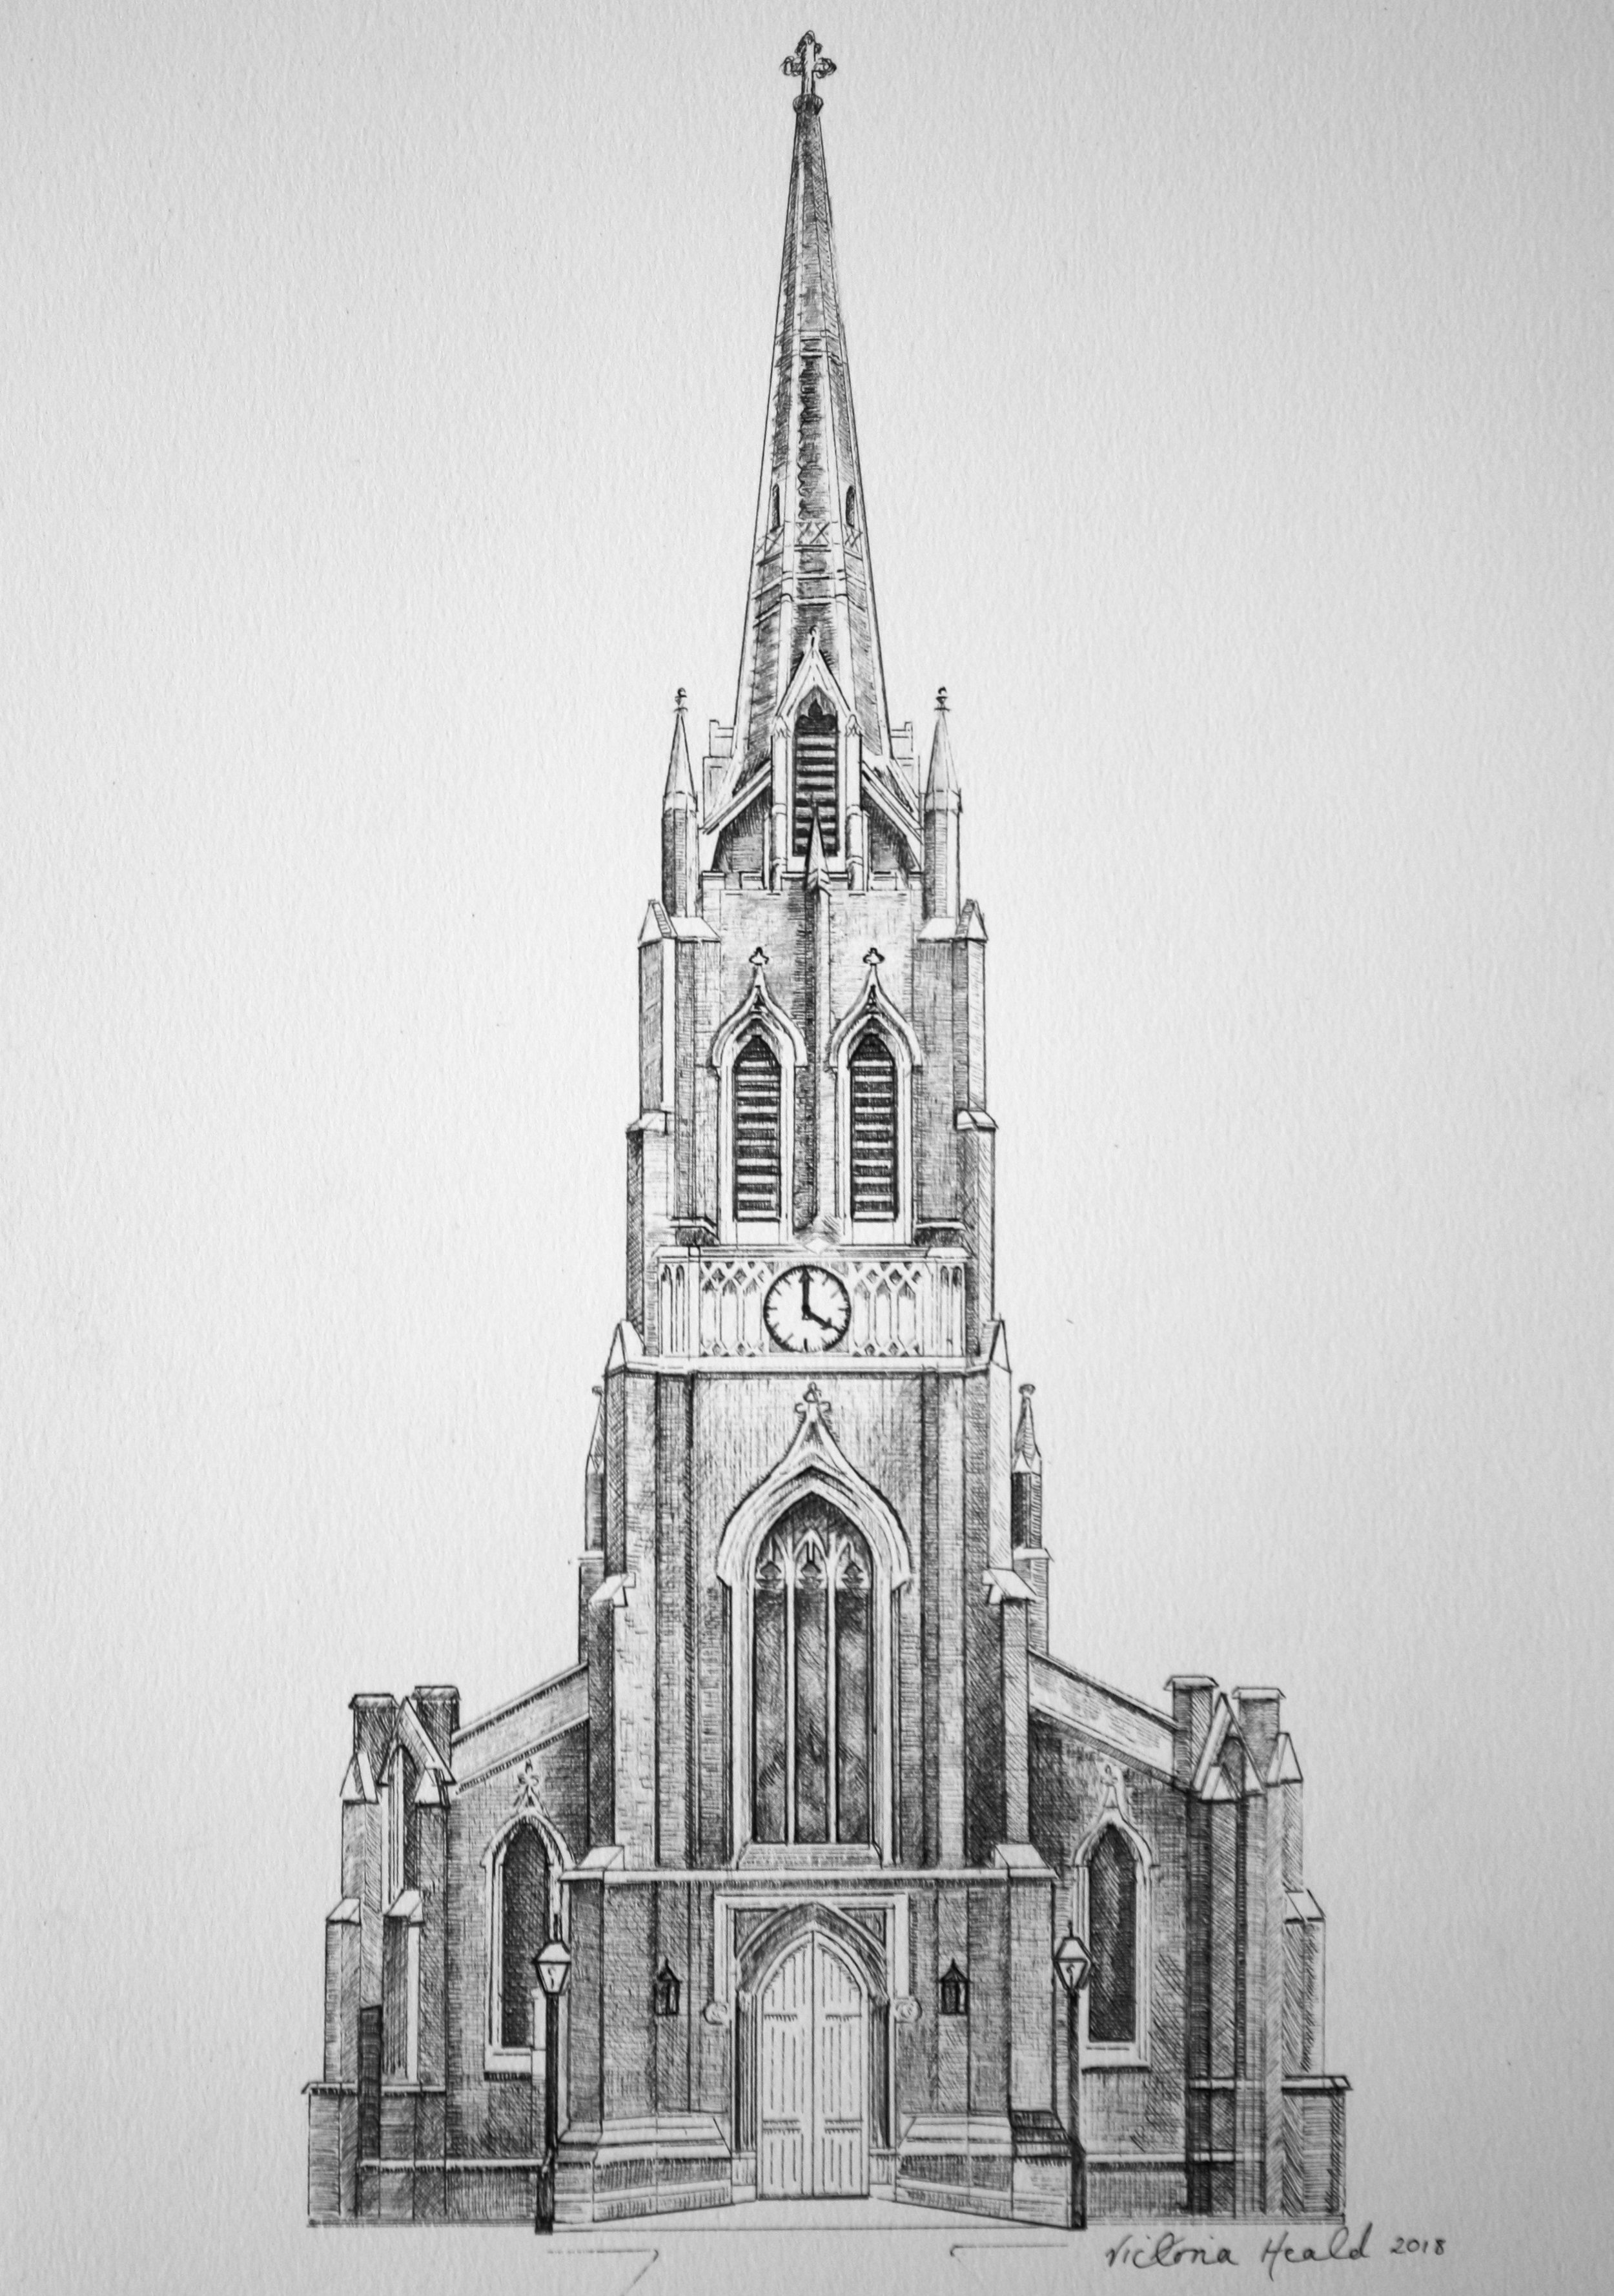 Drawing Commissions - Commission of St. Michael's Church, Highgate, London in pen and ink for a wedding Order of Service. Commissions of homes (below)Find out more about drawing commissions here.